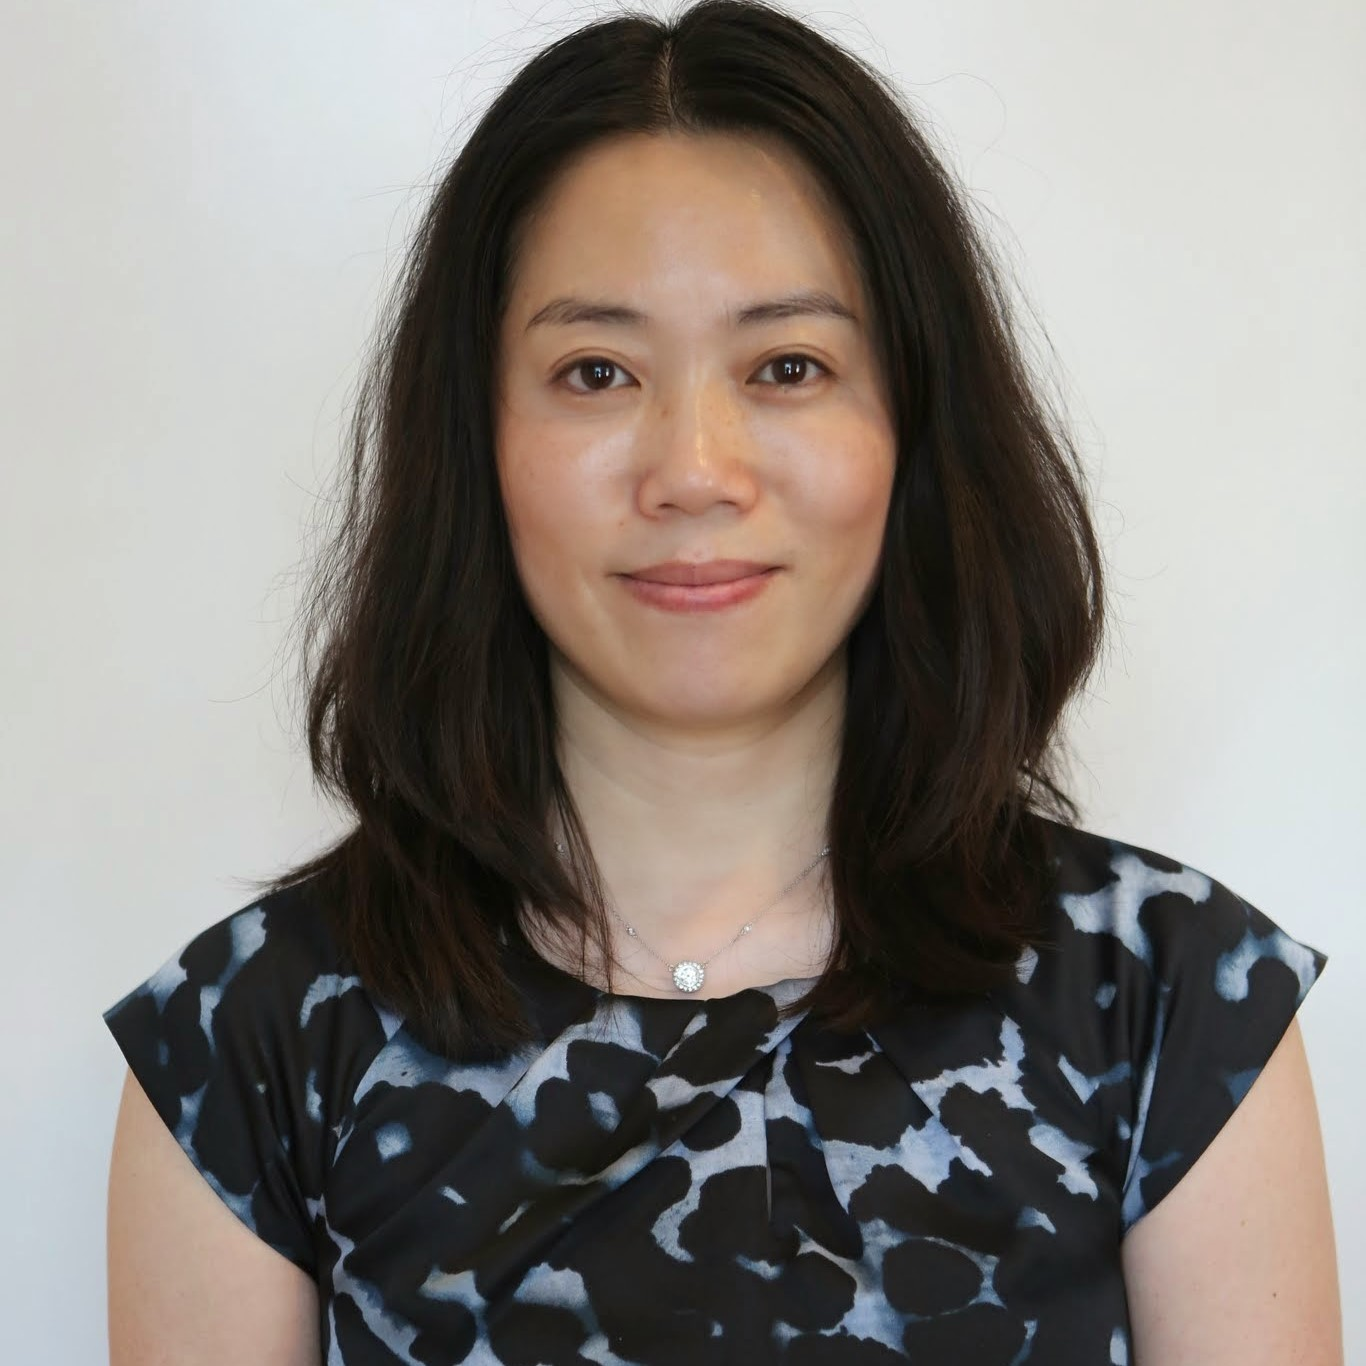 Jenny Ye    Realtor & Broker Owner   With over 10 years of experience in the Boston area real estate market, Jenny brings local insights to our clients, with highest level of professionalism and personal attention.  Direct: 781-285-5898  Email: Zhensight@gmail.com